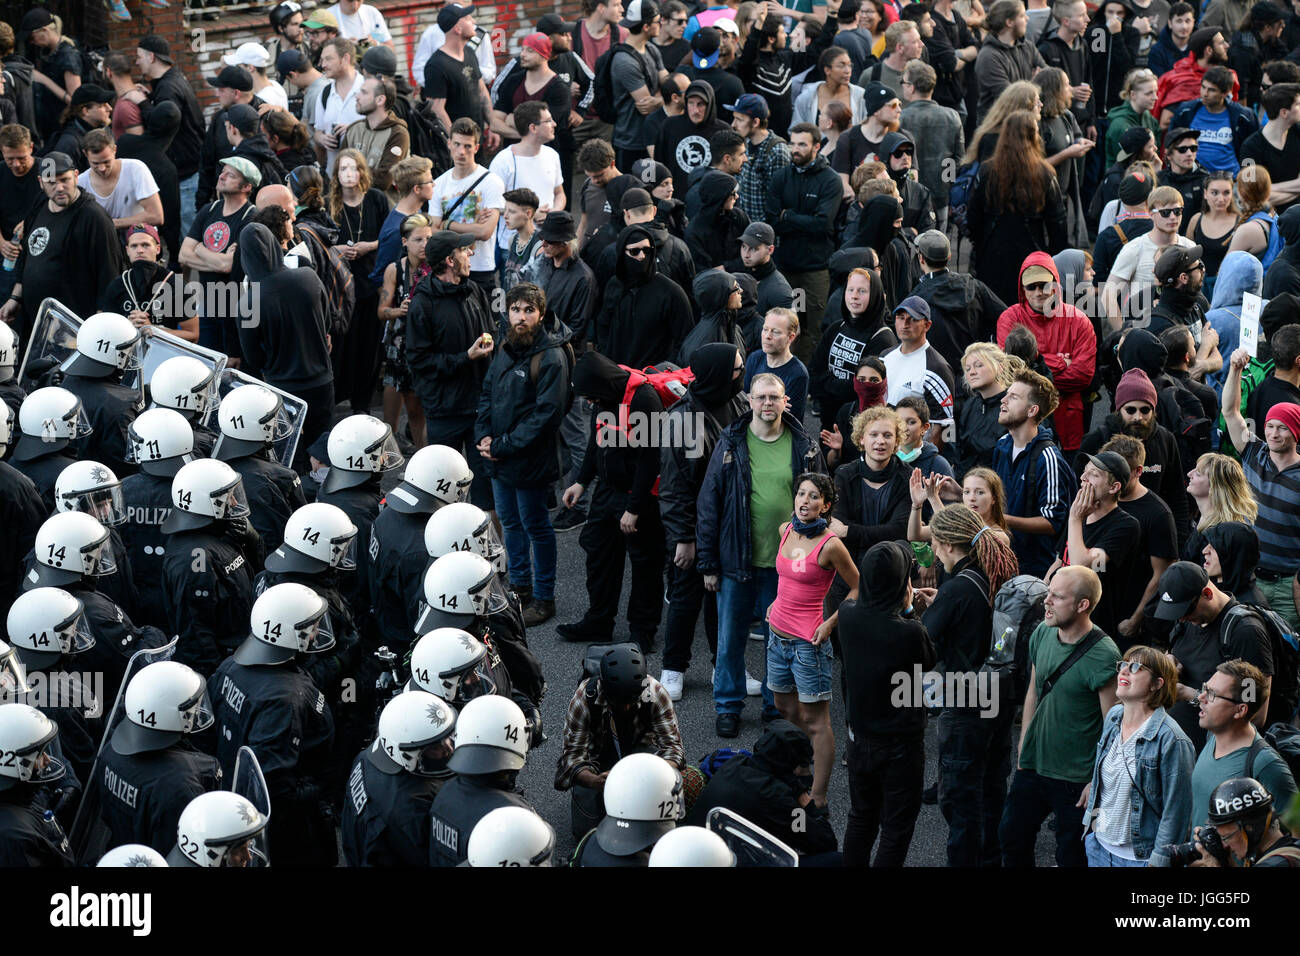 Hamburg, Germany. 6th July, 2017. GERMANY, Hamburg, protest rally 'G-20 WELCOME TO HELL' against G-20 summit - Stock Image